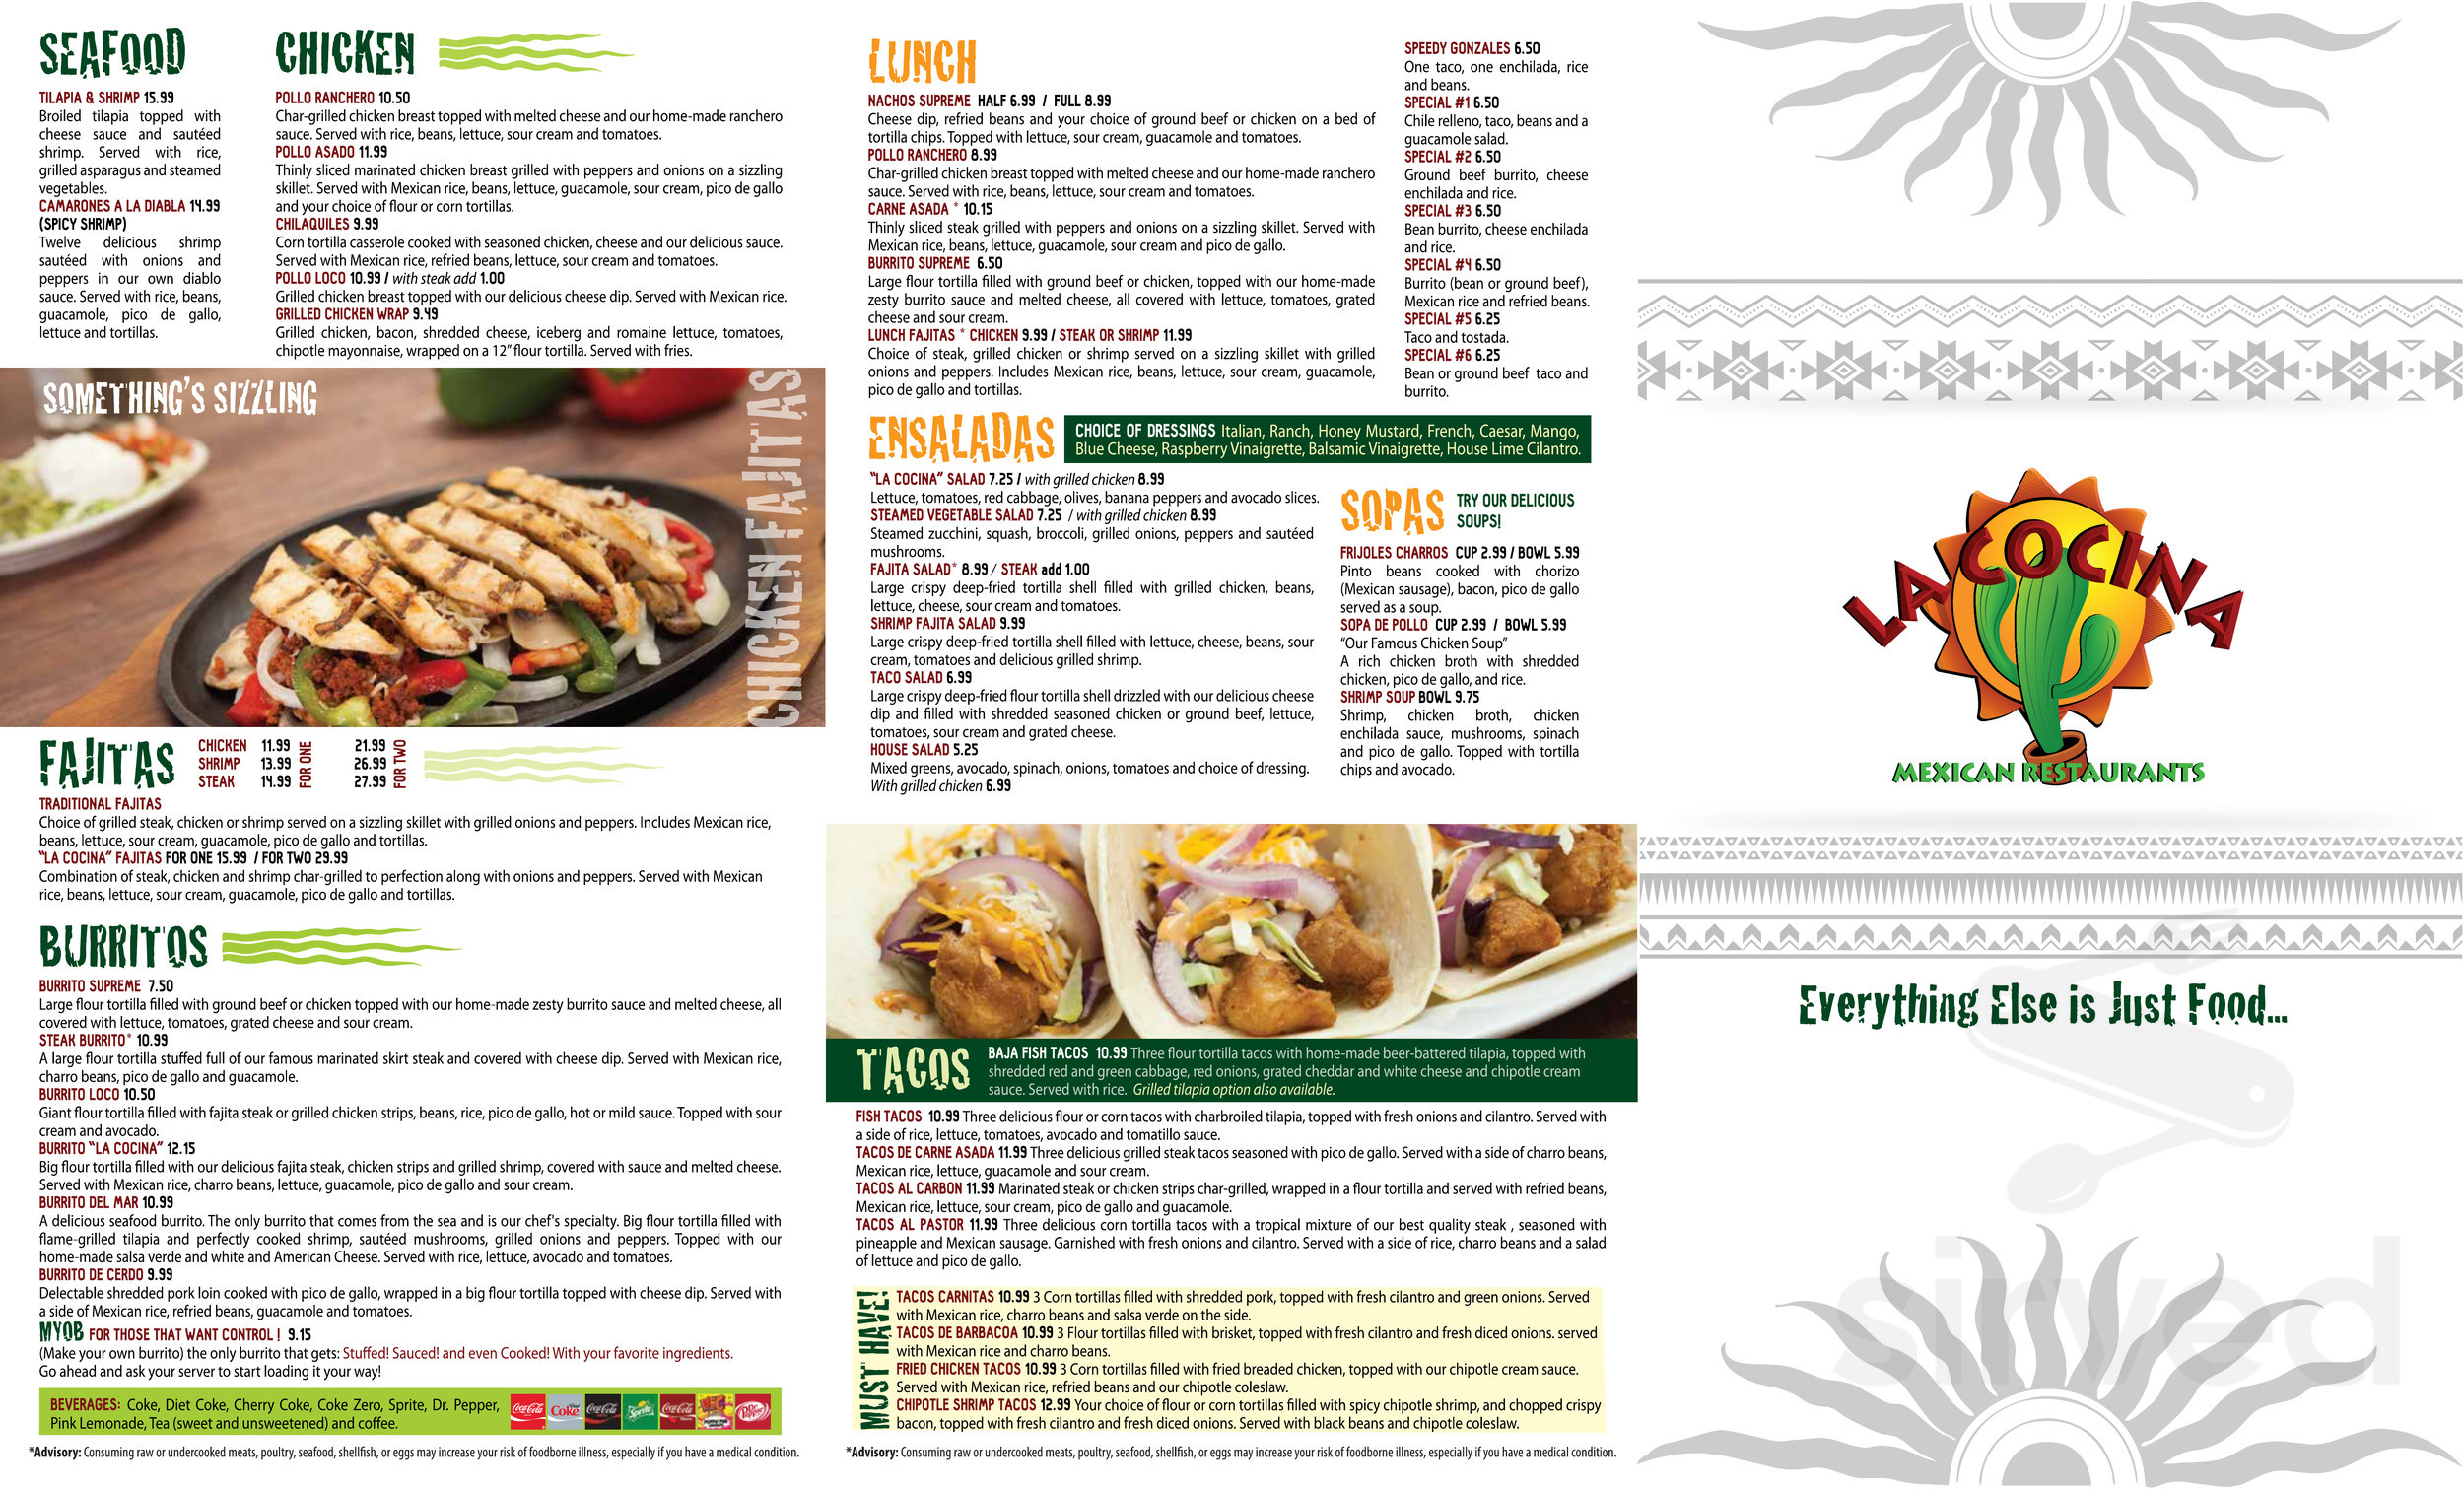 La Cocina Restaurant Menu Menu For La Cocina Mexican Restaurant In Dallas Georgia